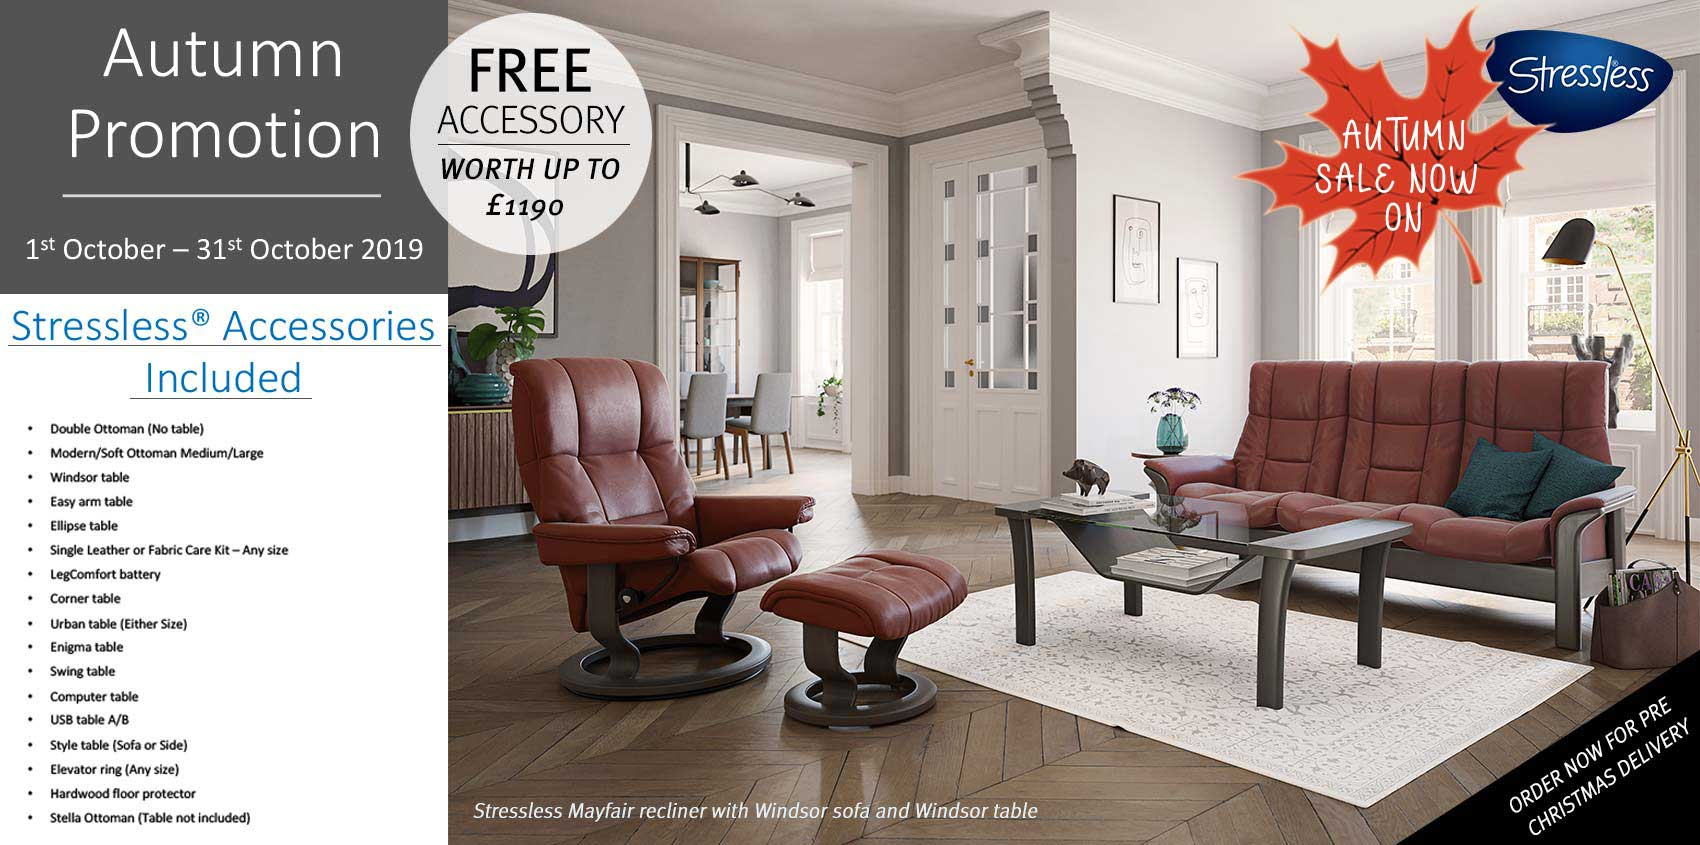 Stressless free accessory promotion